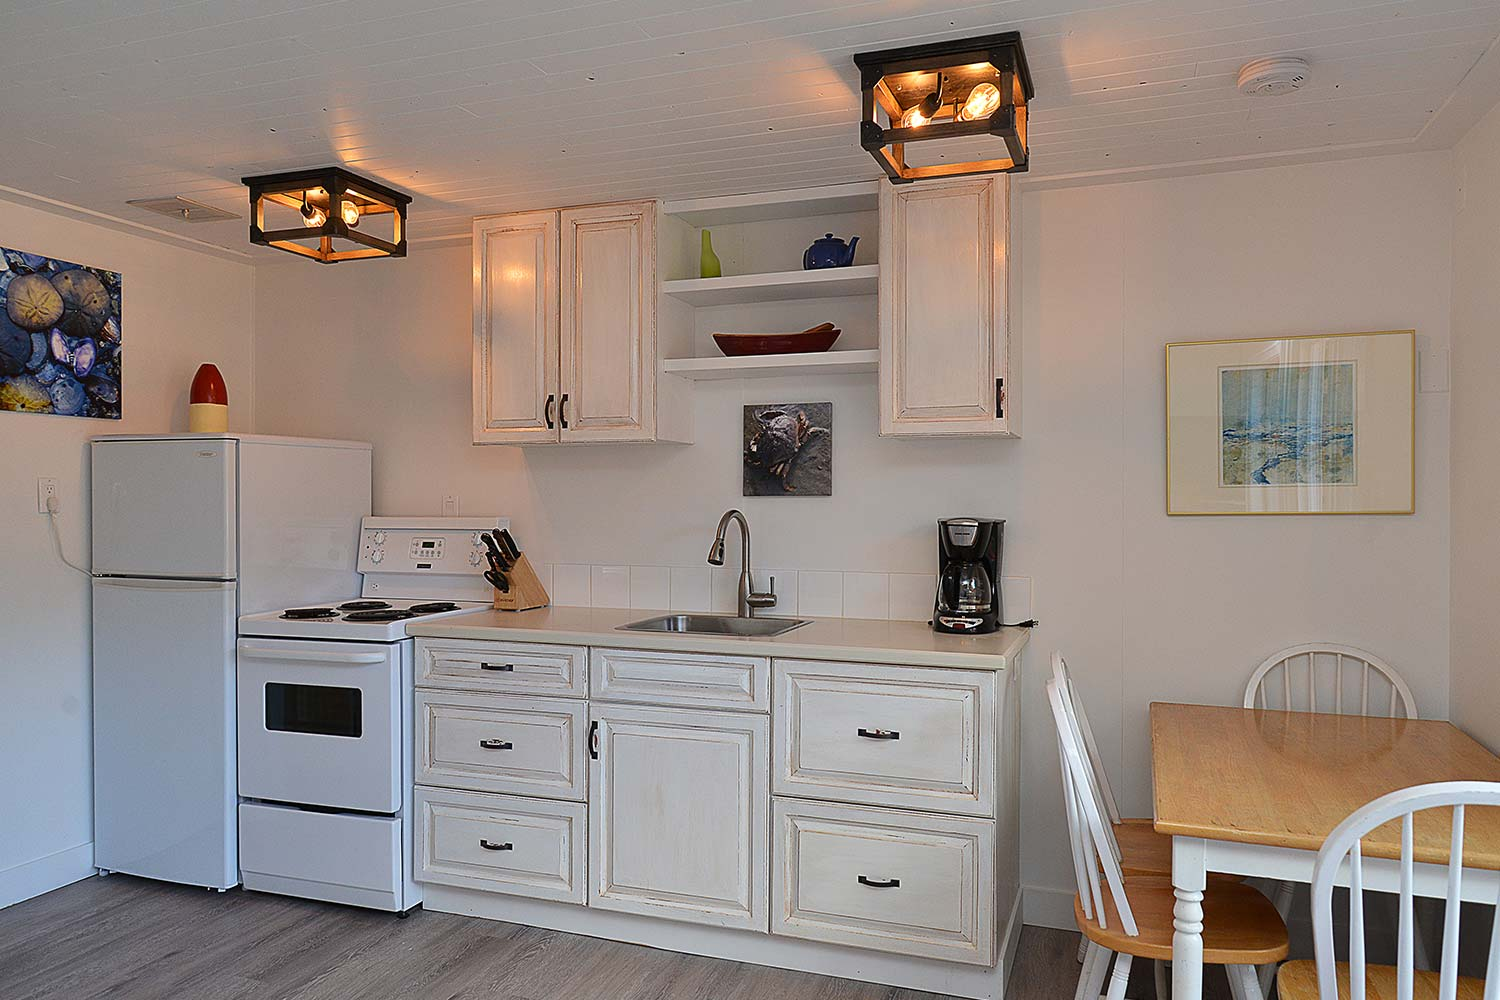 A coffee maker, stove, refrigerator, & dining table in the kitchen at this waterfront cottage for rent at John Henry's.